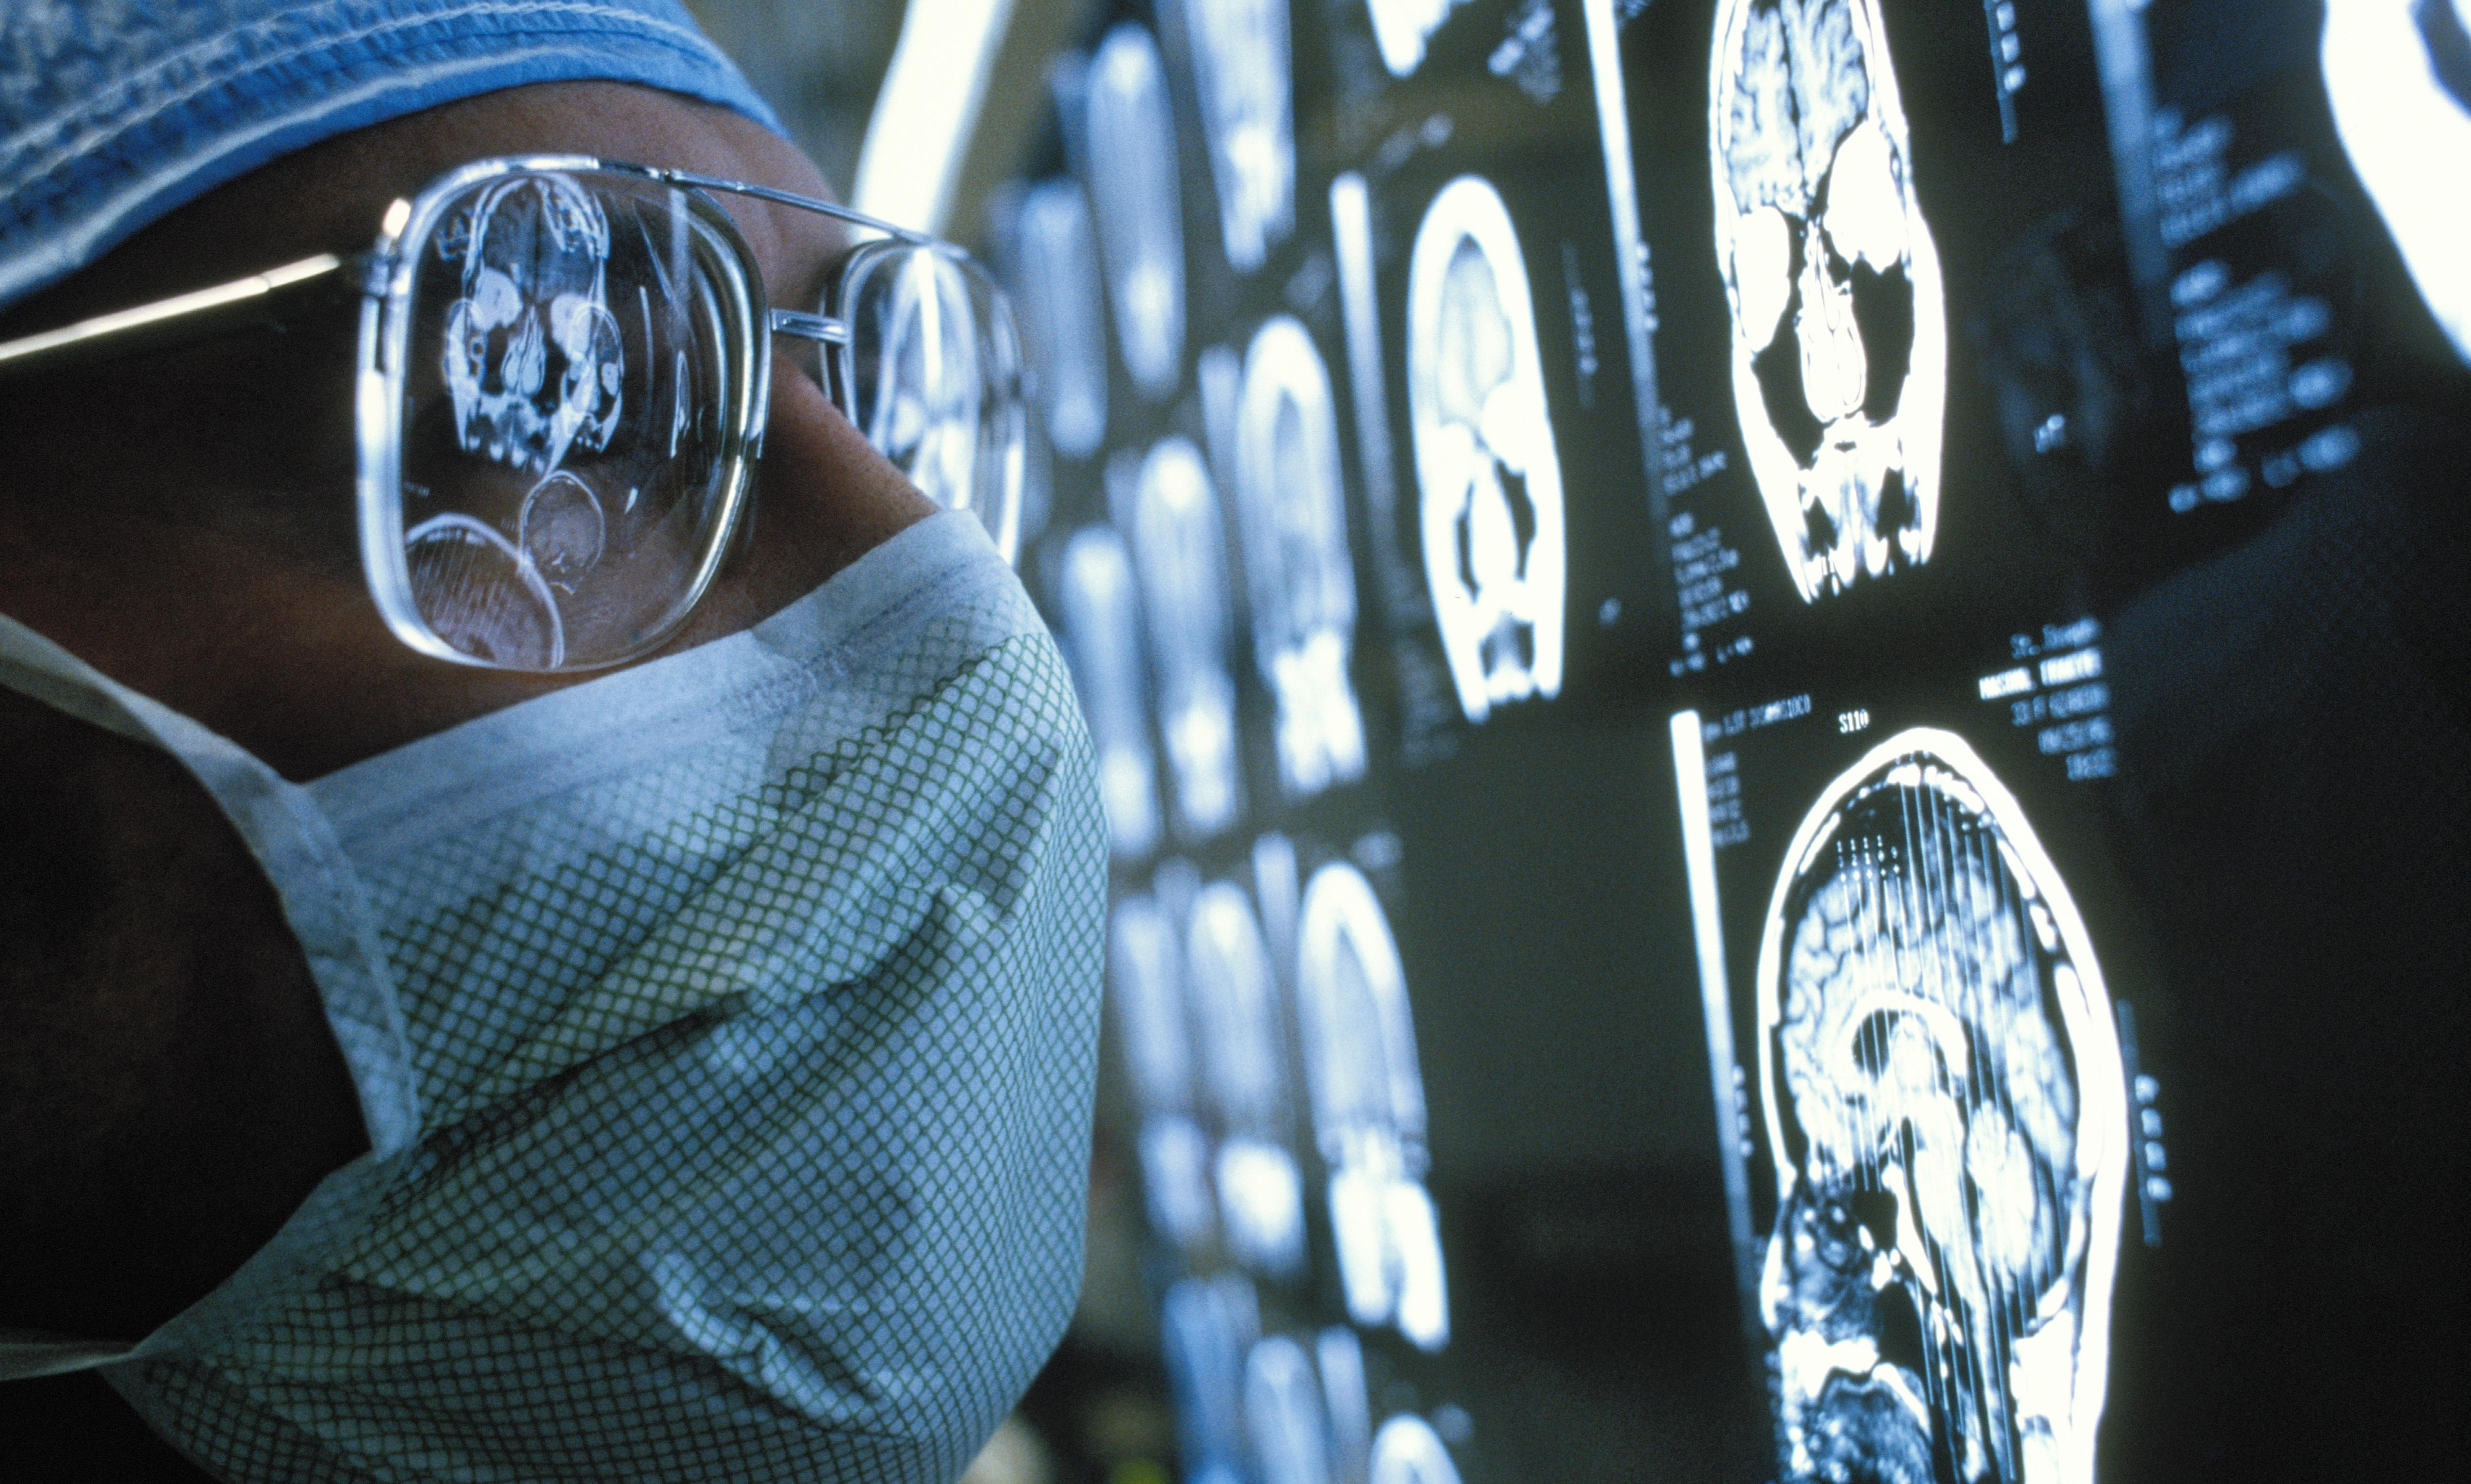 This may be a turning point in treating neurodegenerative diseases